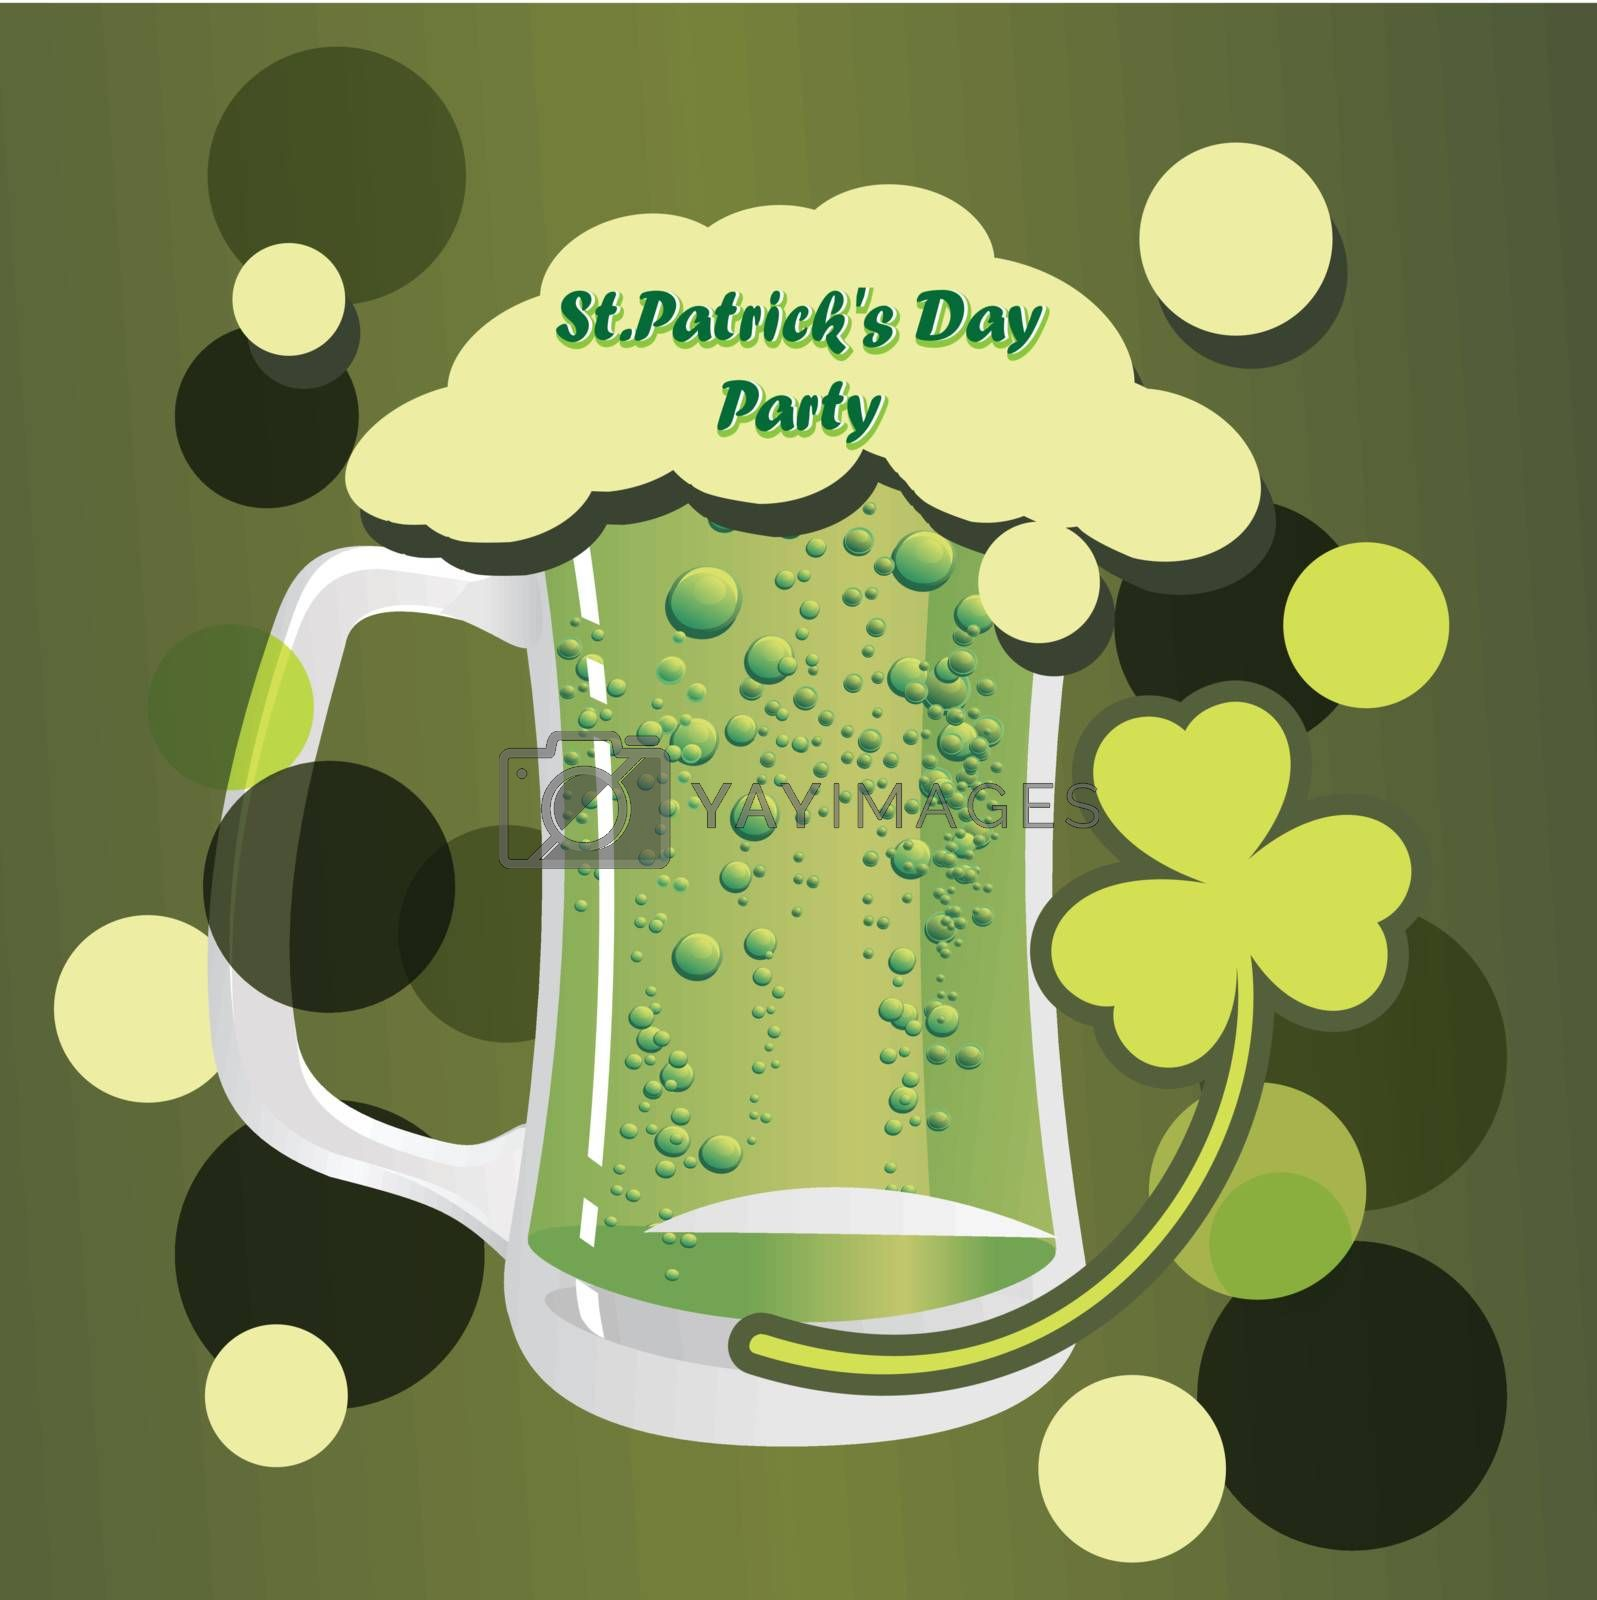 St Patrick s Day Greetings Party by nirots